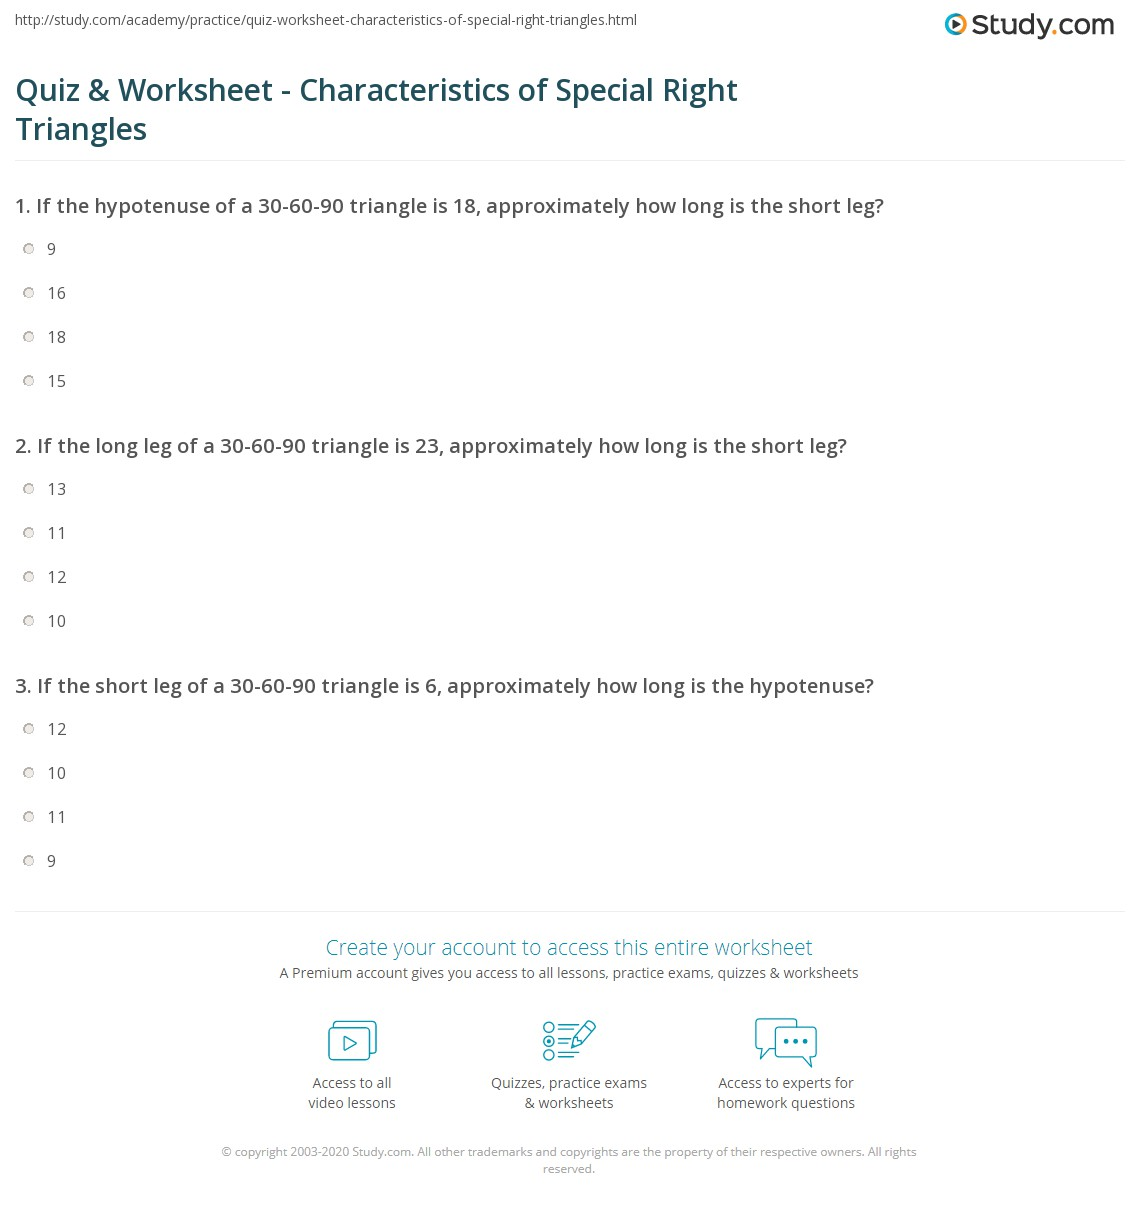 Worksheets Special Right Triangles 30 60 90 Worksheet Answers quiz worksheet characteristics of special right triangles print types and properties worksheet